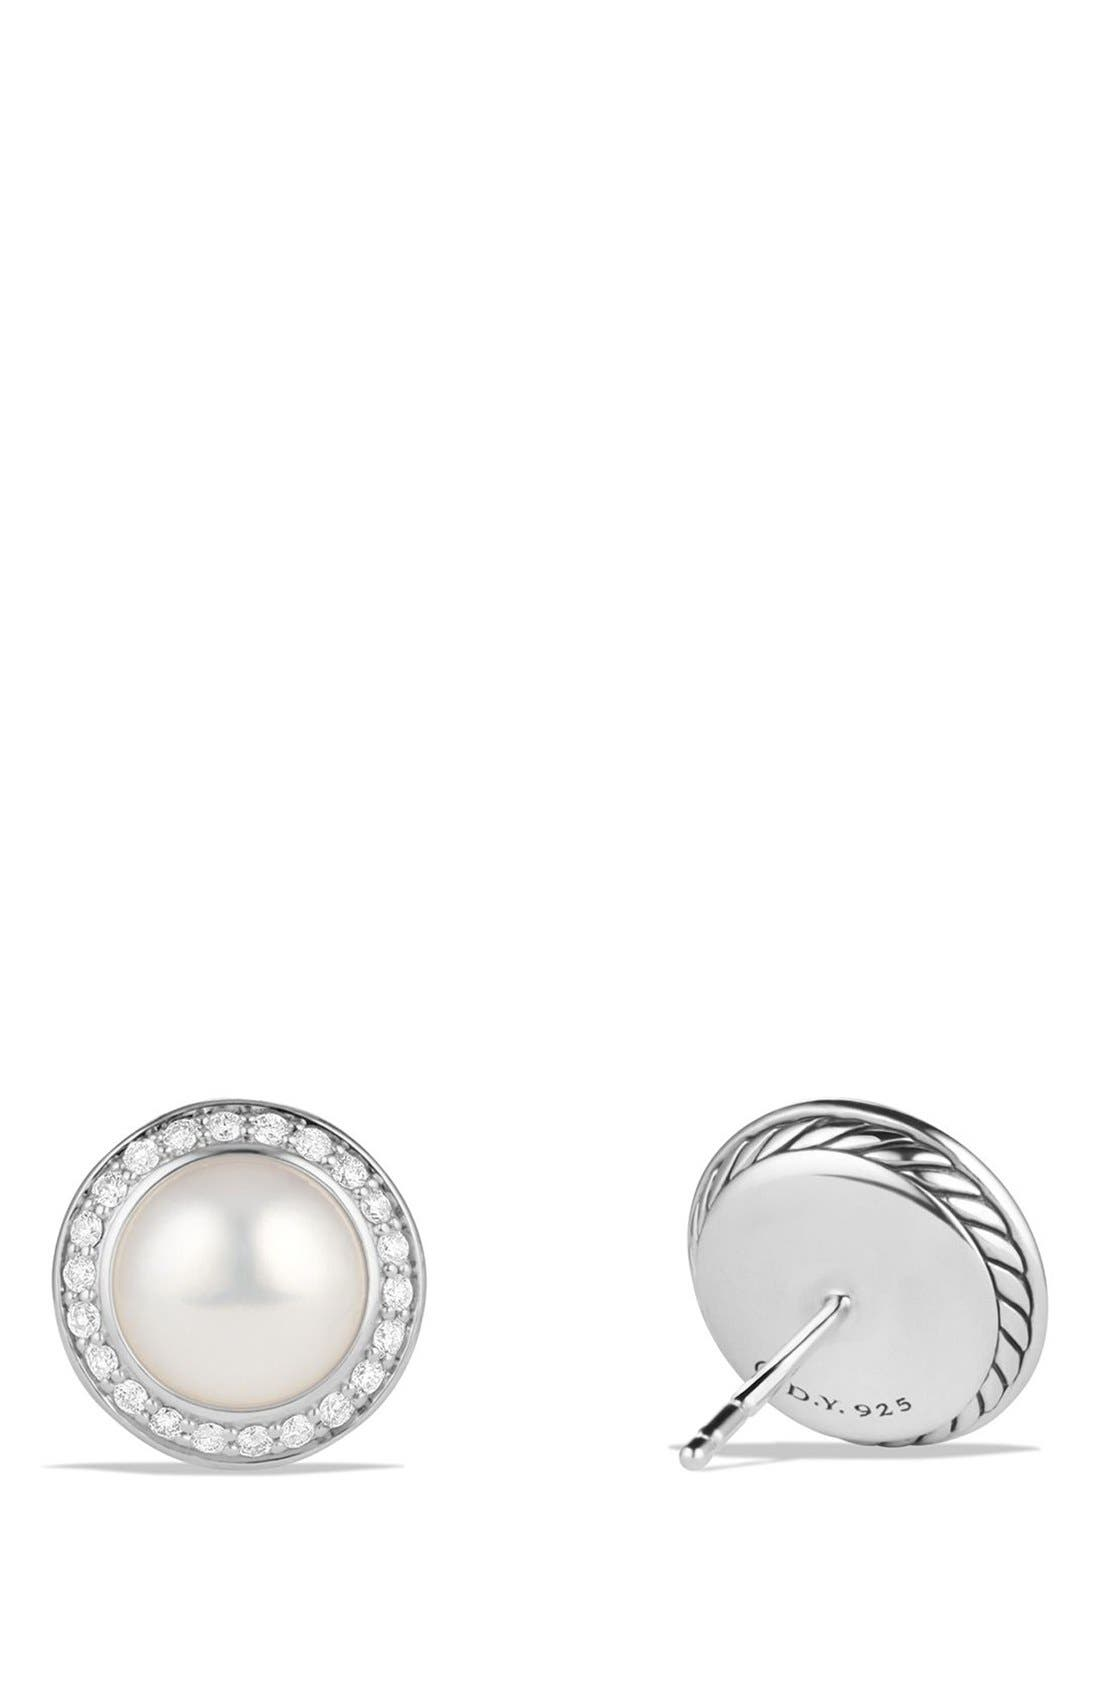 'Cerise' Petite Earrings with Pearls and Diamonds,                             Alternate thumbnail 2, color,                             Silver/ Pearl